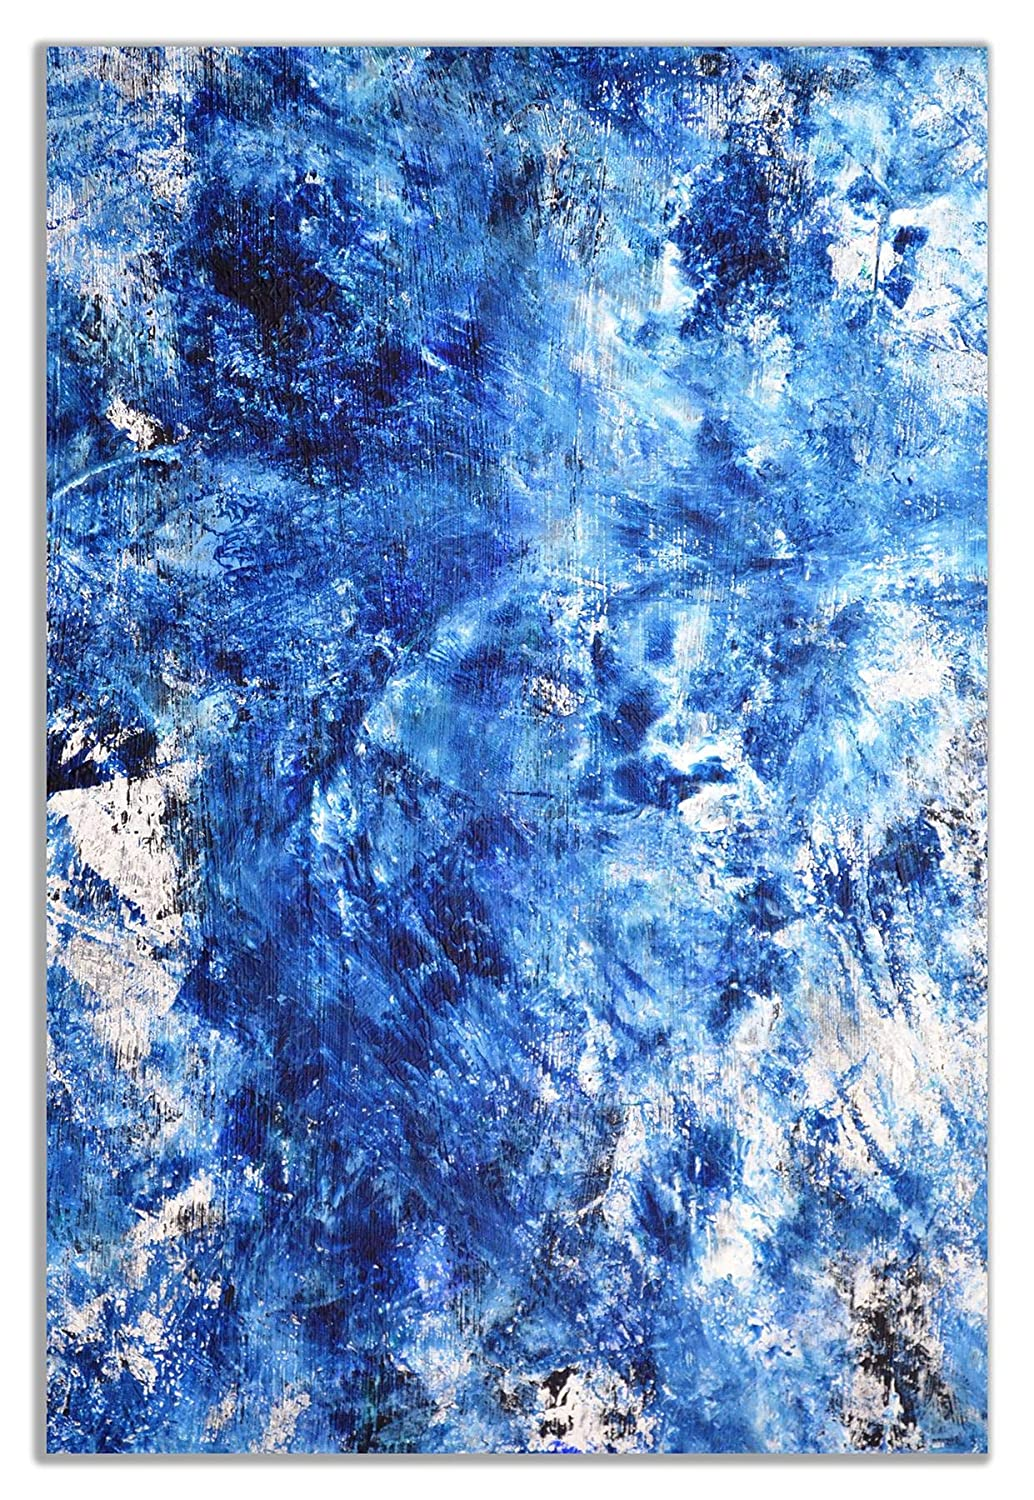 Blue White Abstract Art Painting Canvas Wall Art Picture Print 12x8